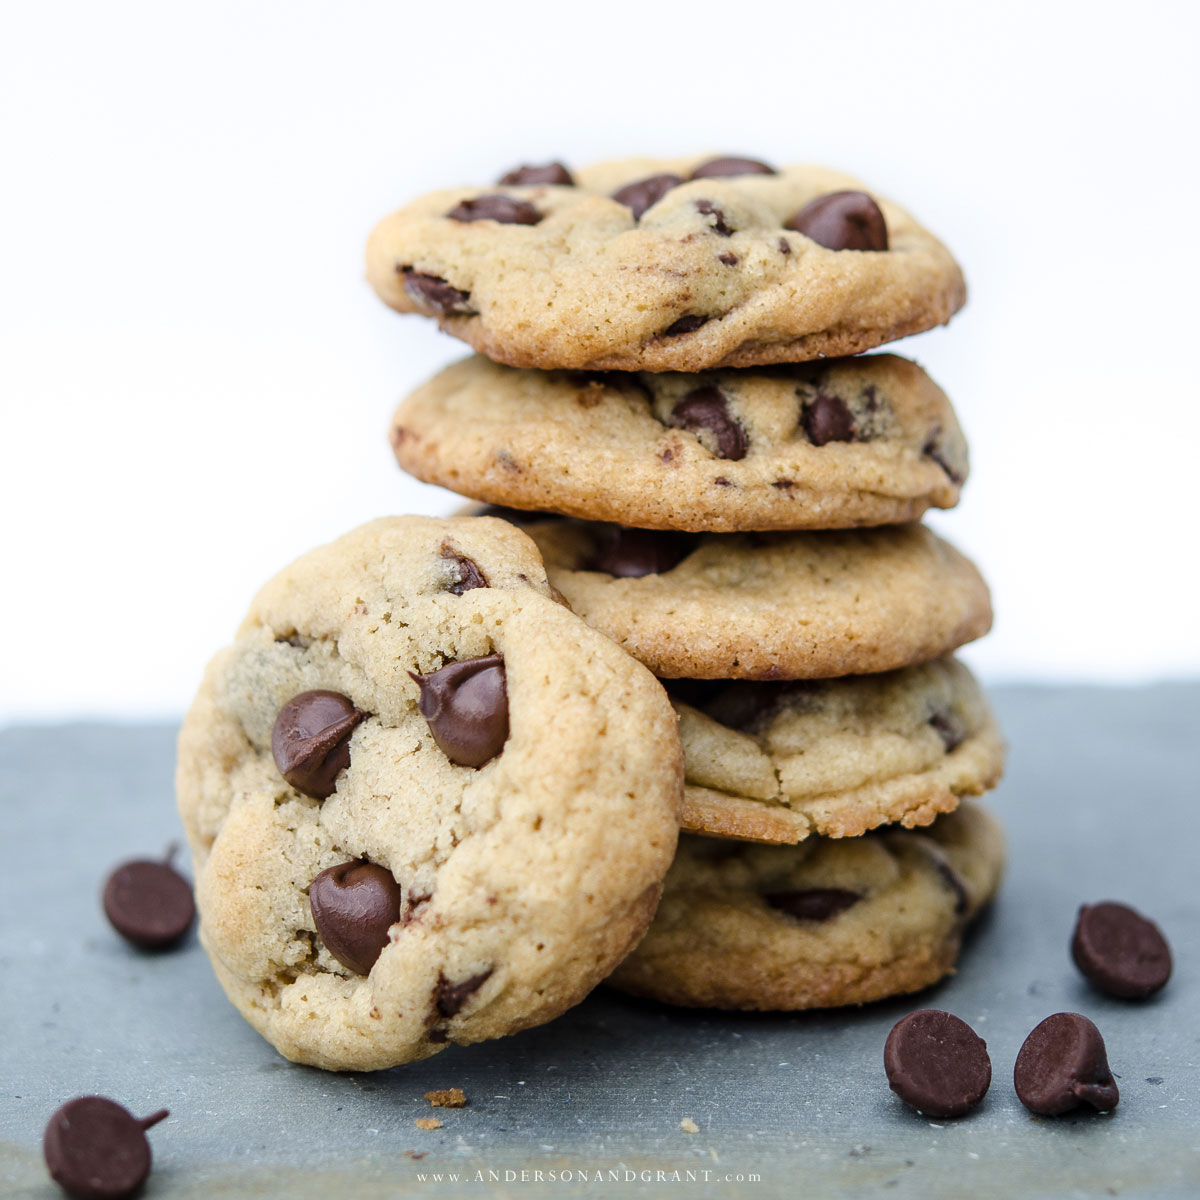 Get a recipe for the most flavorful chocolate chip cookies with a special ingredient + tips for getting perfect cookies every time. #recipe #cookies #chocolatechipcookies | www.andersonandgrant.com